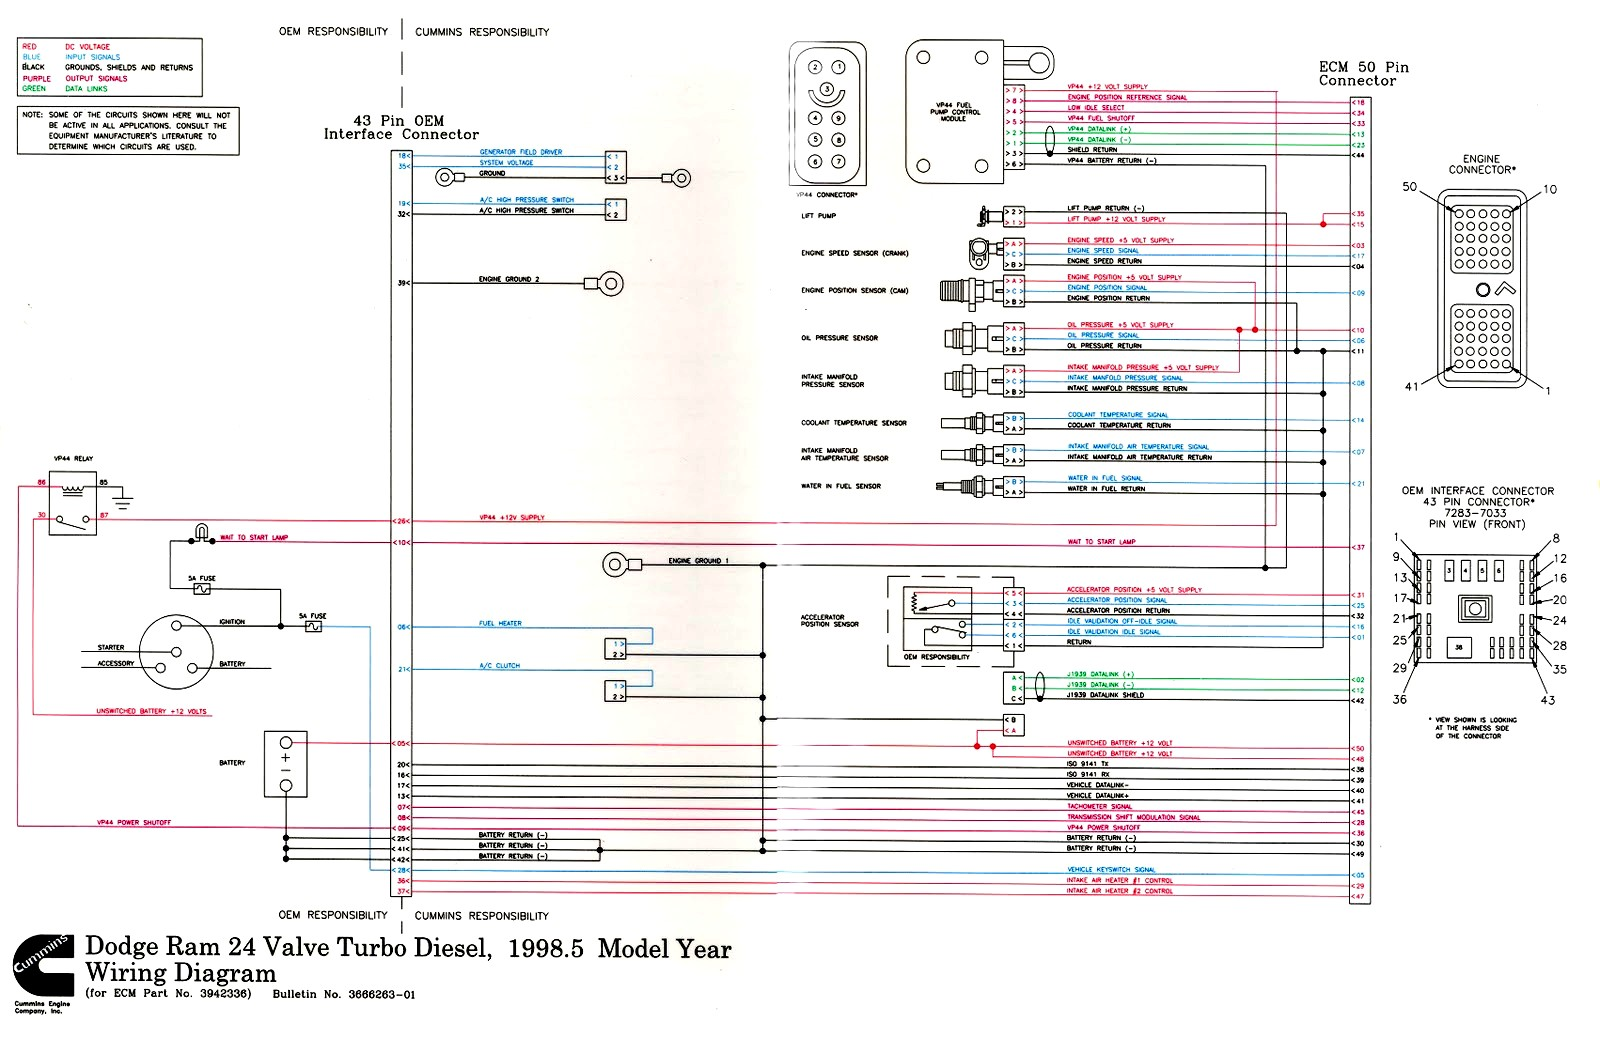 Cummins Wiring Diagram Ethernet Rj45 Ecm Mins Ism Engine